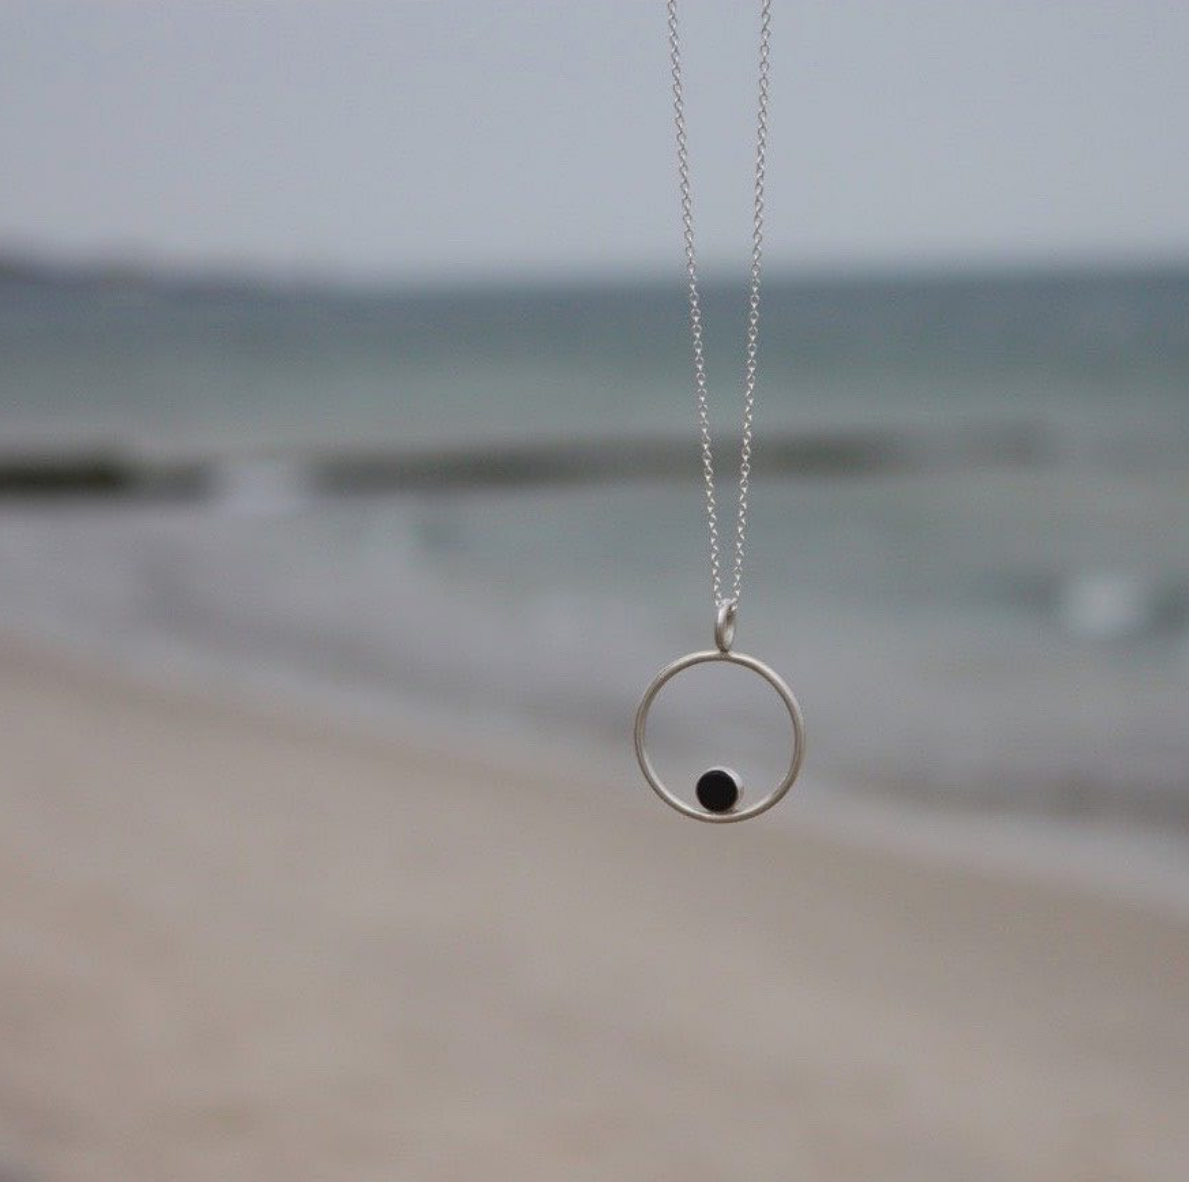 Ting Goods Handmade Circle Stone Necklace